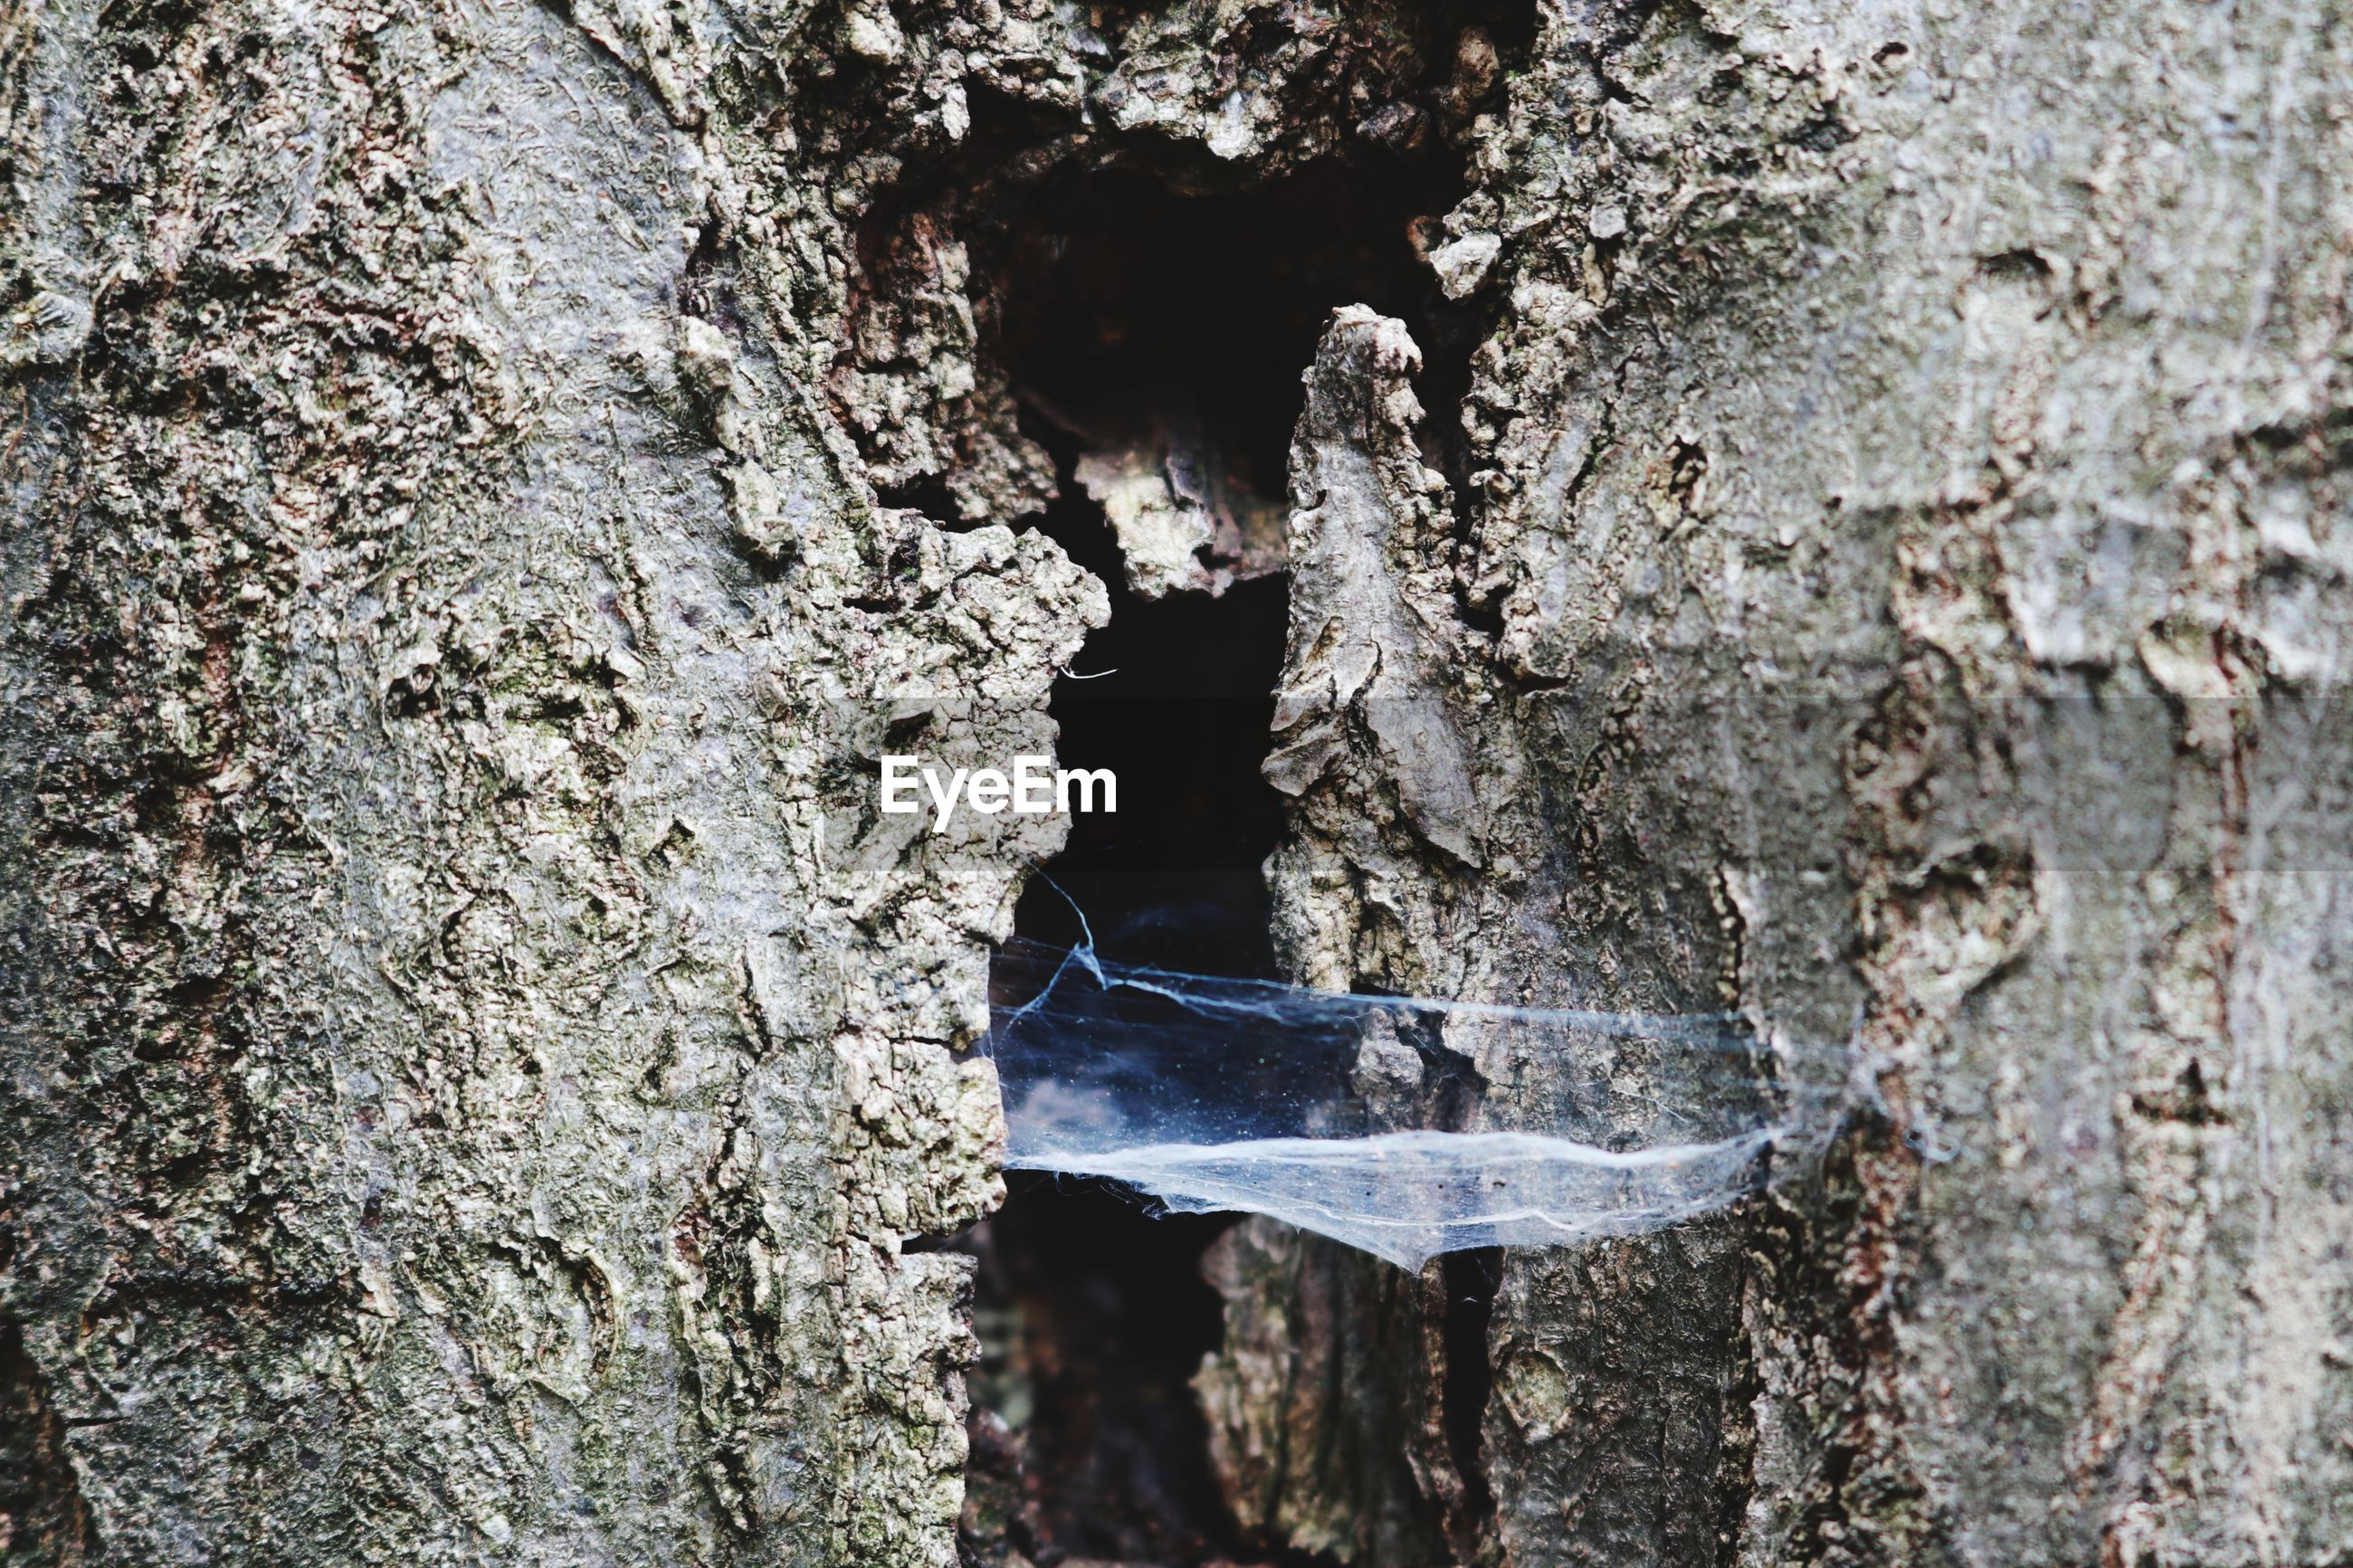 CLOSE-UP OF A INSECT ON TREE TRUNK